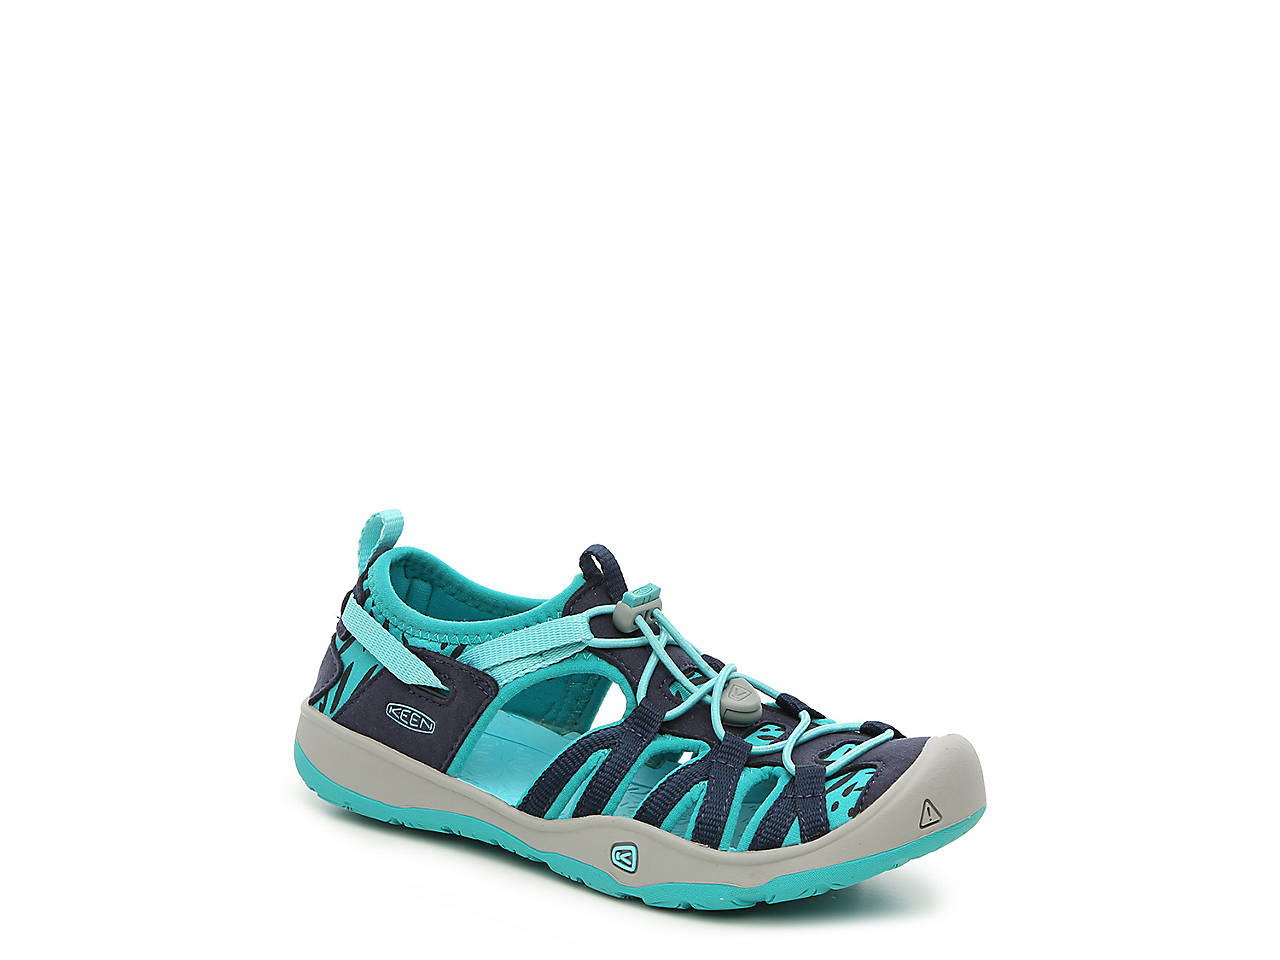 efd1151ac579 Keen Moxie Youth Sandal Kids Shoes